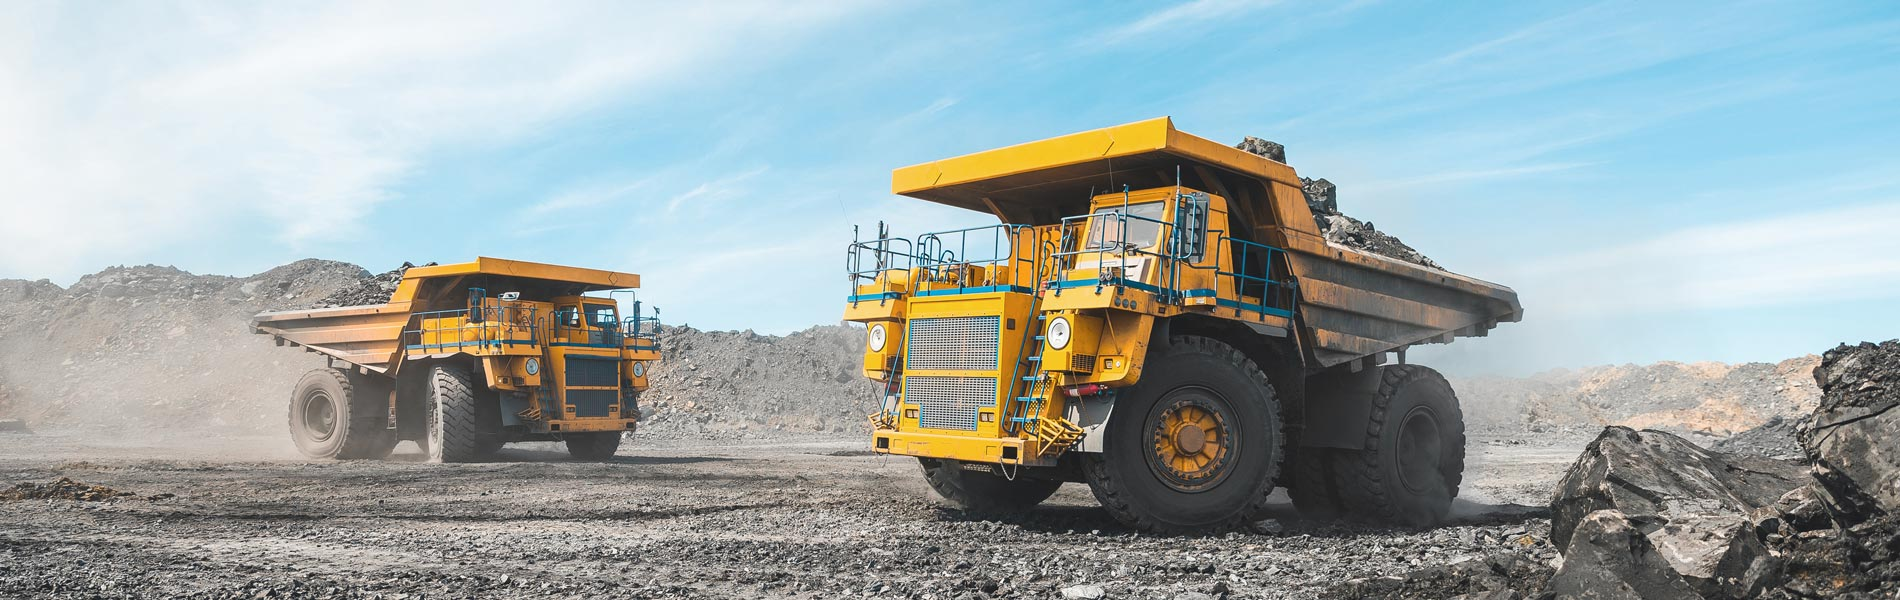 Heavy machinery at an open mine